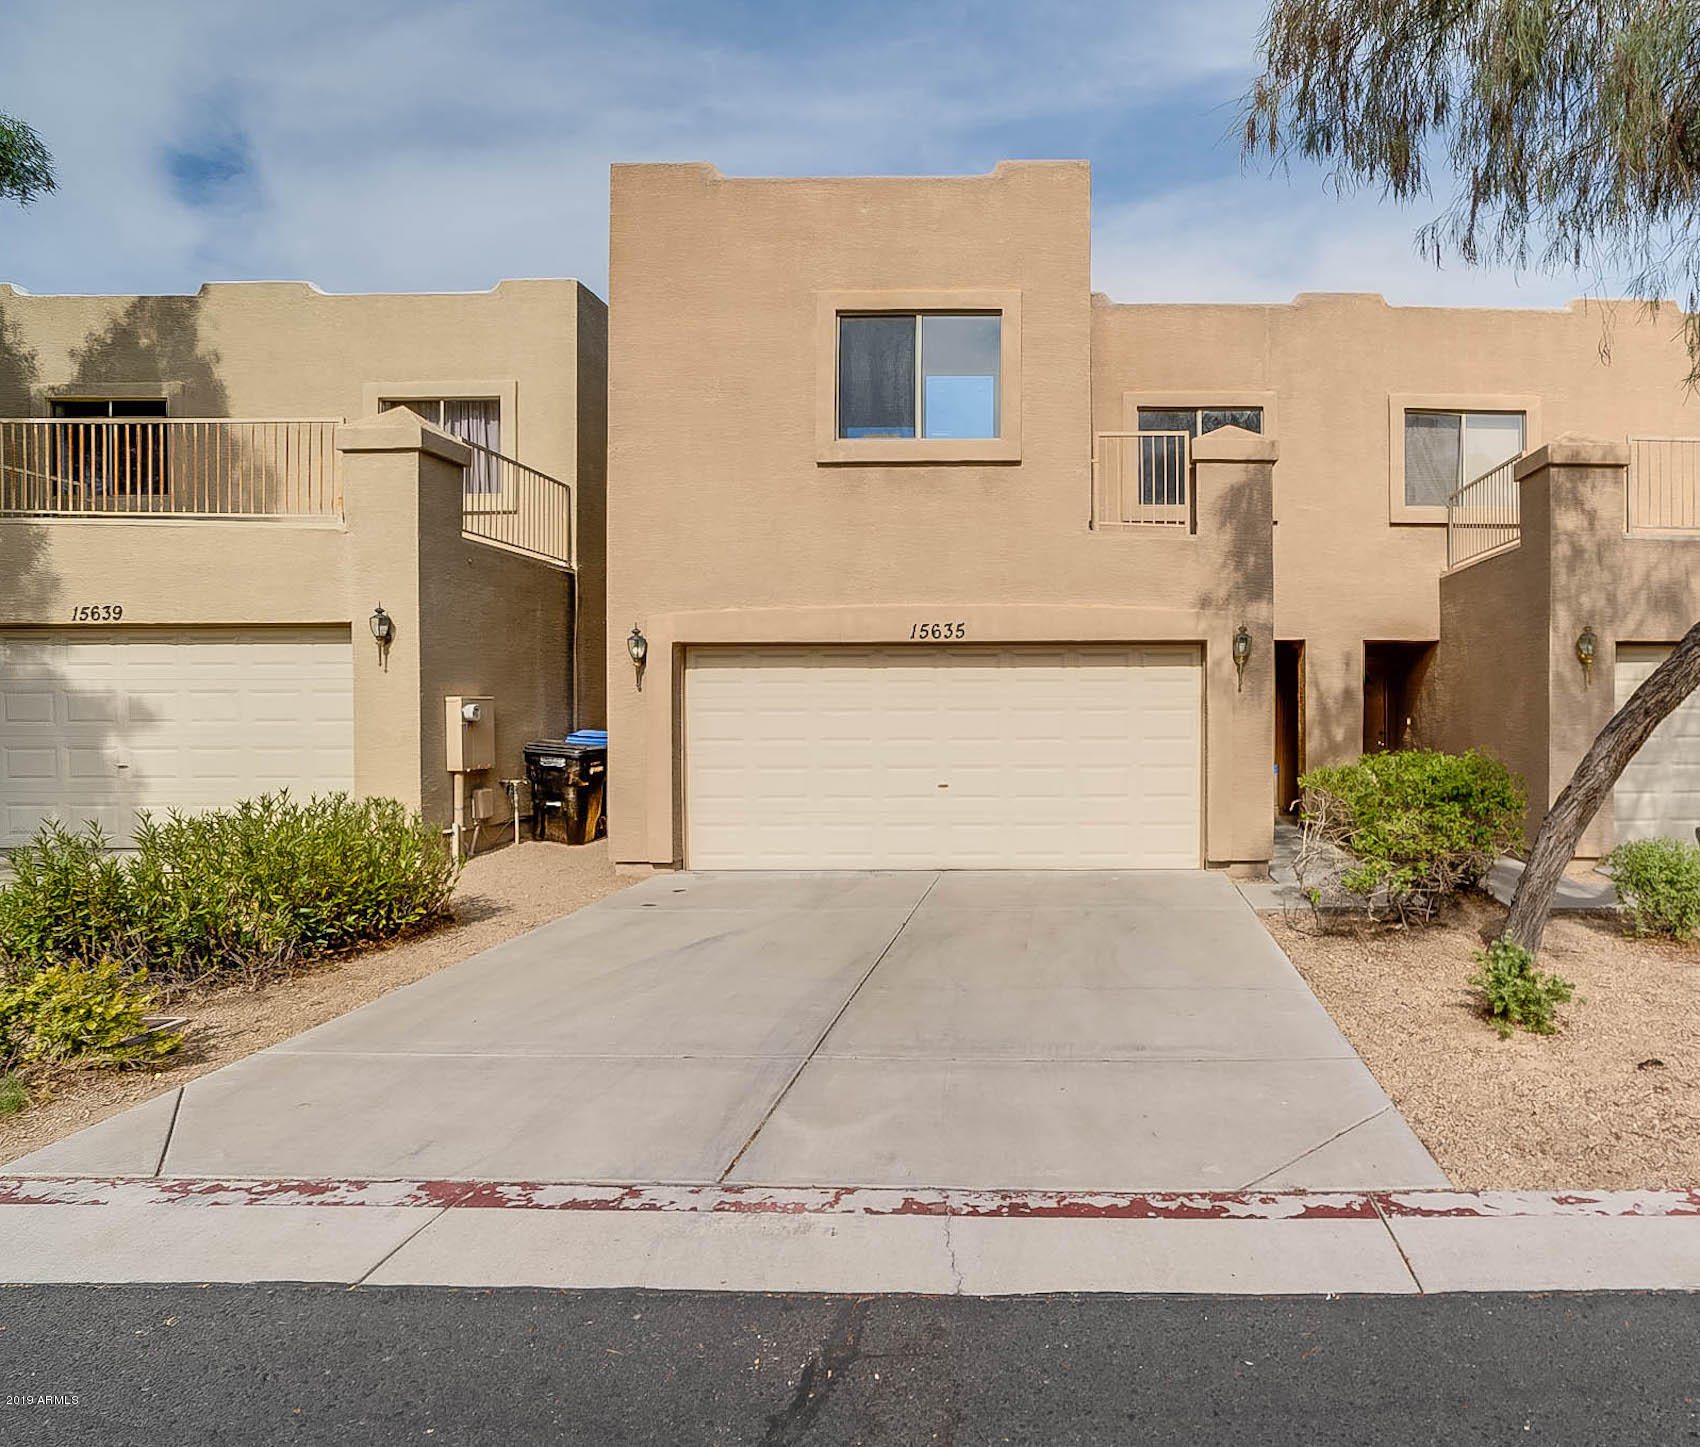 Photo of 15635 N 29TH Way, Phoenix, AZ 85032